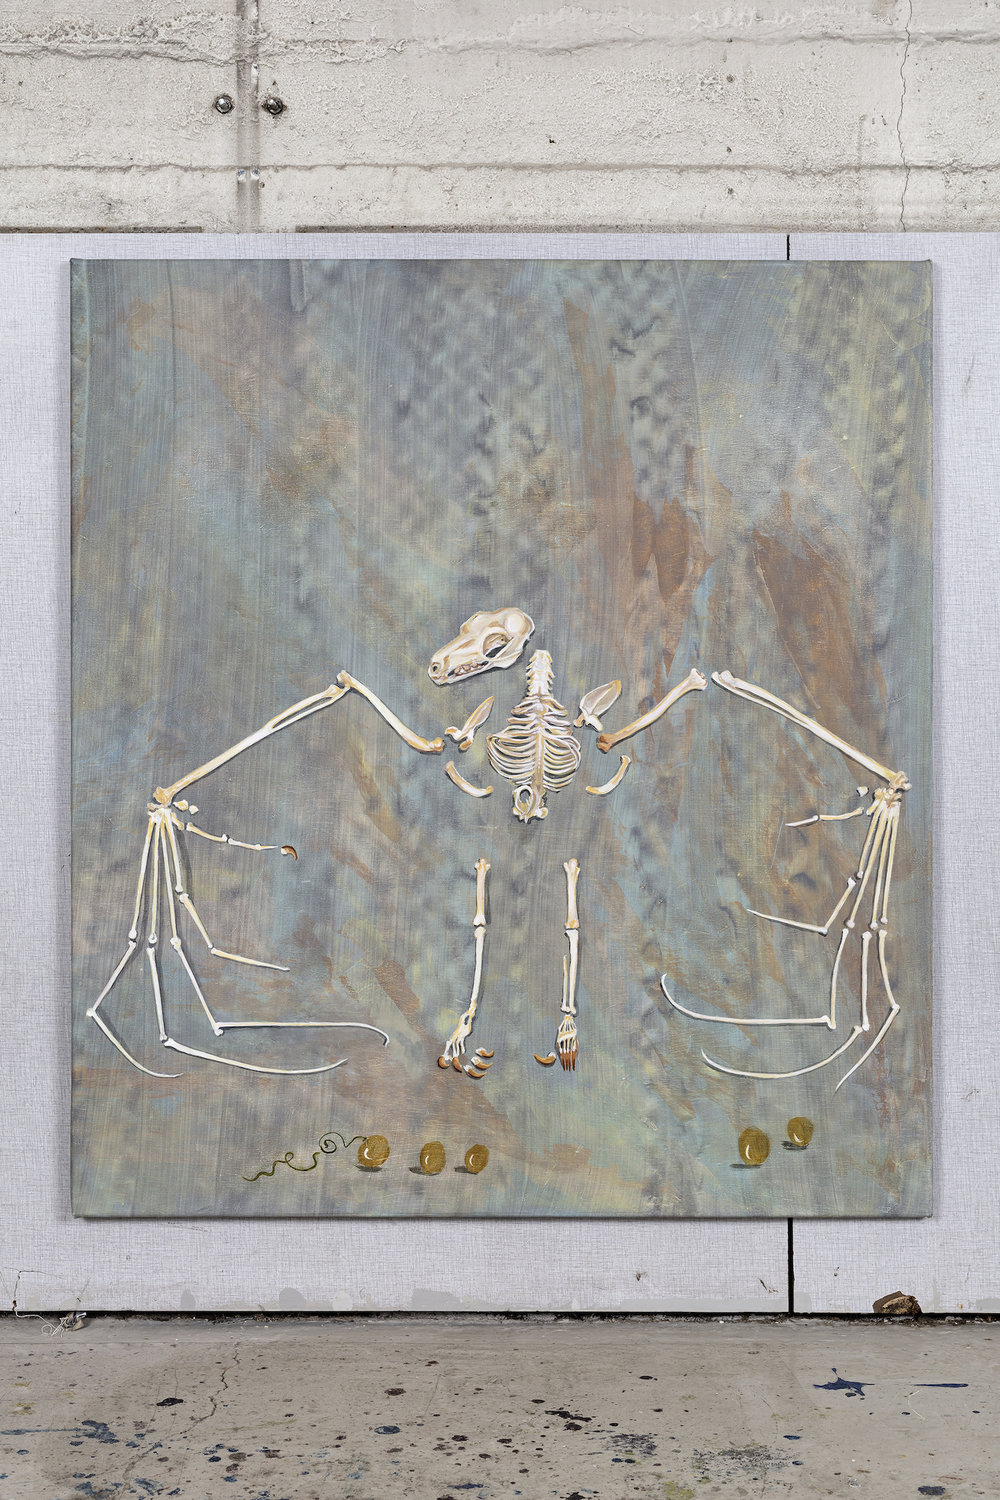 Allison Katz Fruit bat for Mallarmé: I am truly decomposed 2016, Acrylic on canvas, 100 x 90 cm